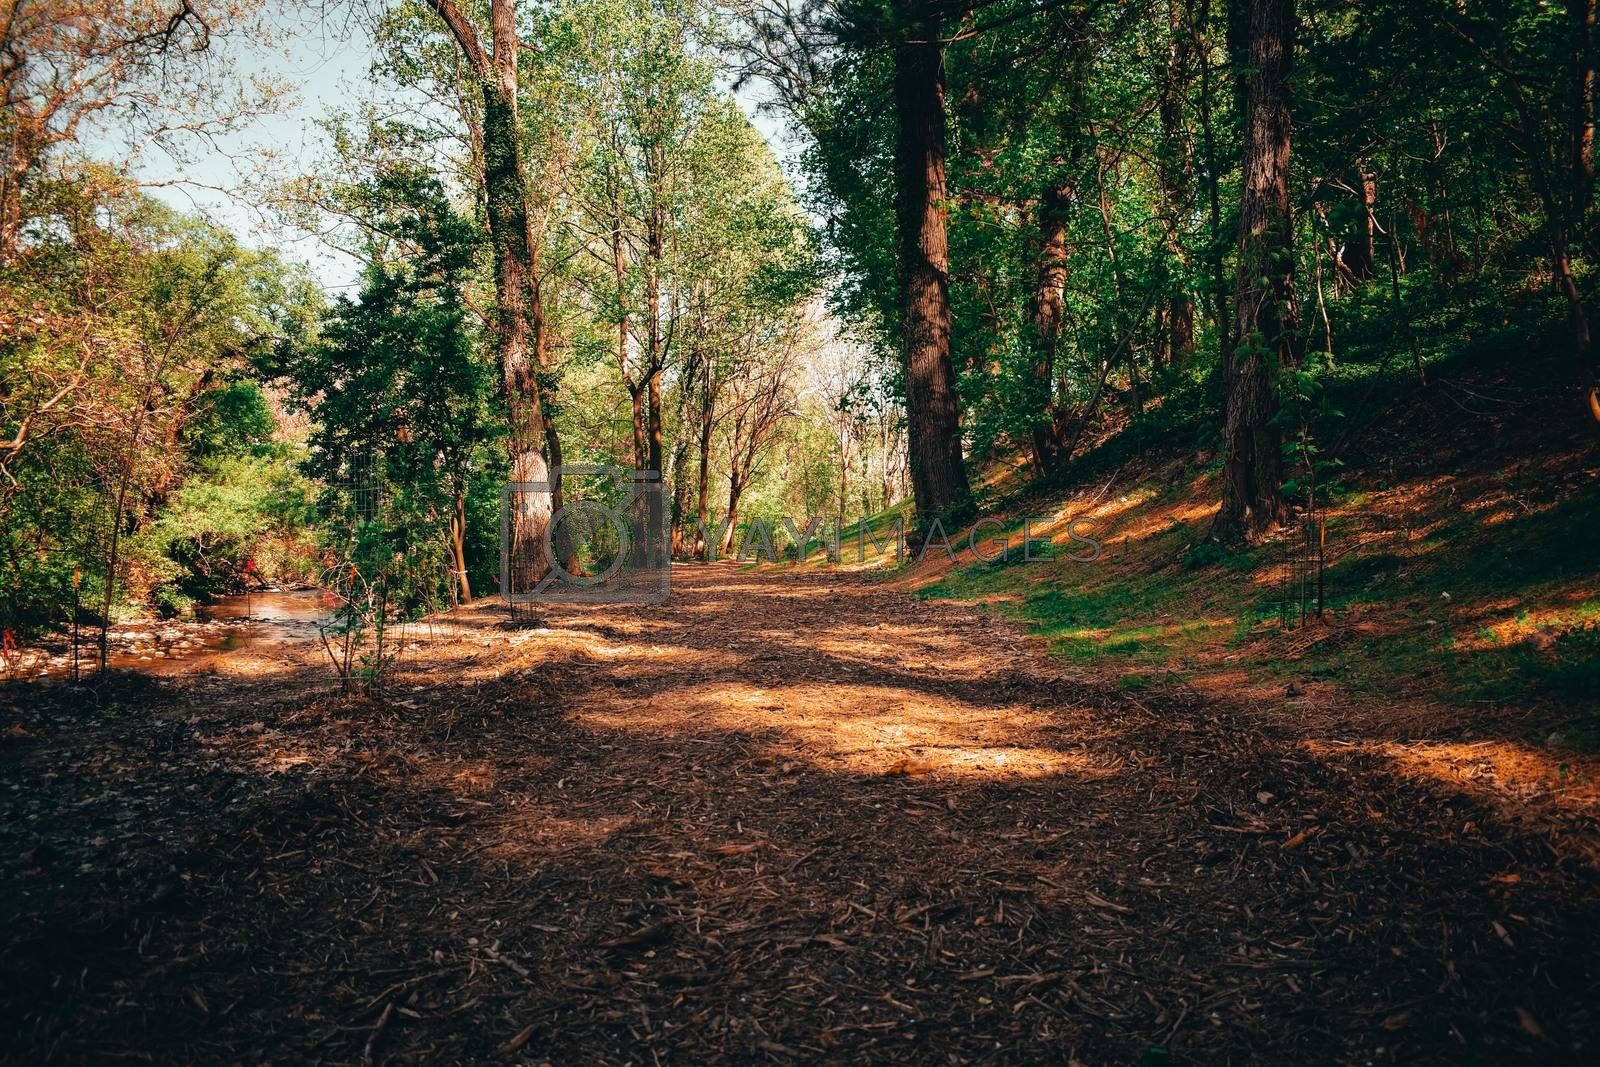 A Wide Path of Wood-Chips in a Summer Forest